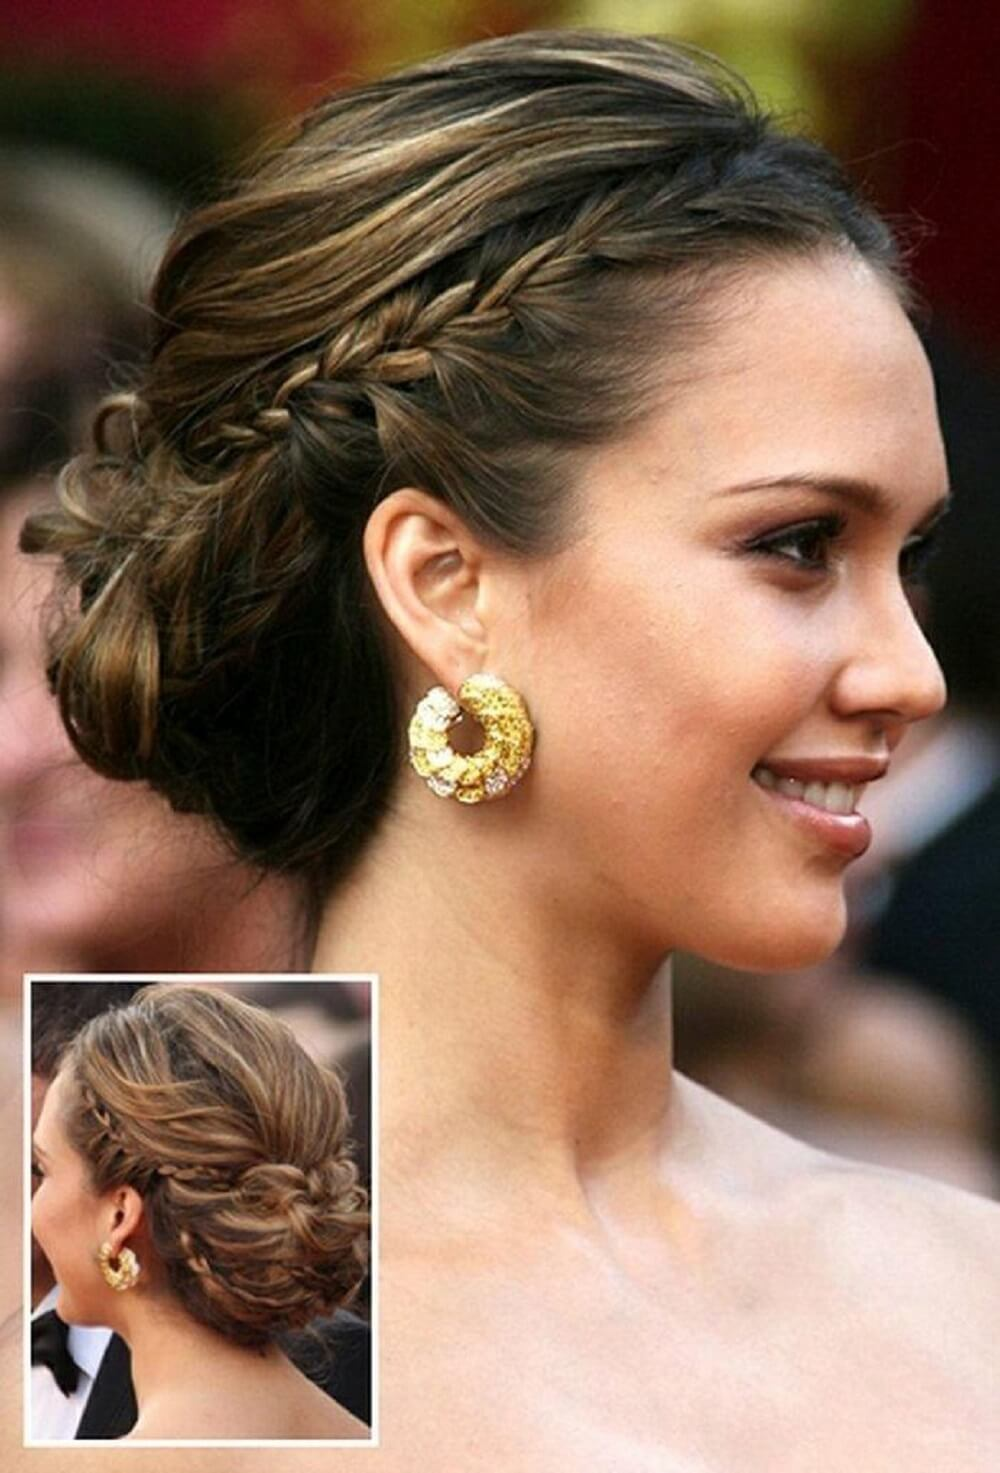 Celeb Inspired Holiday Hairstyles ONYC Hair Styling Guide Celeb Inspired Holiday Hairstyles Braided Bun